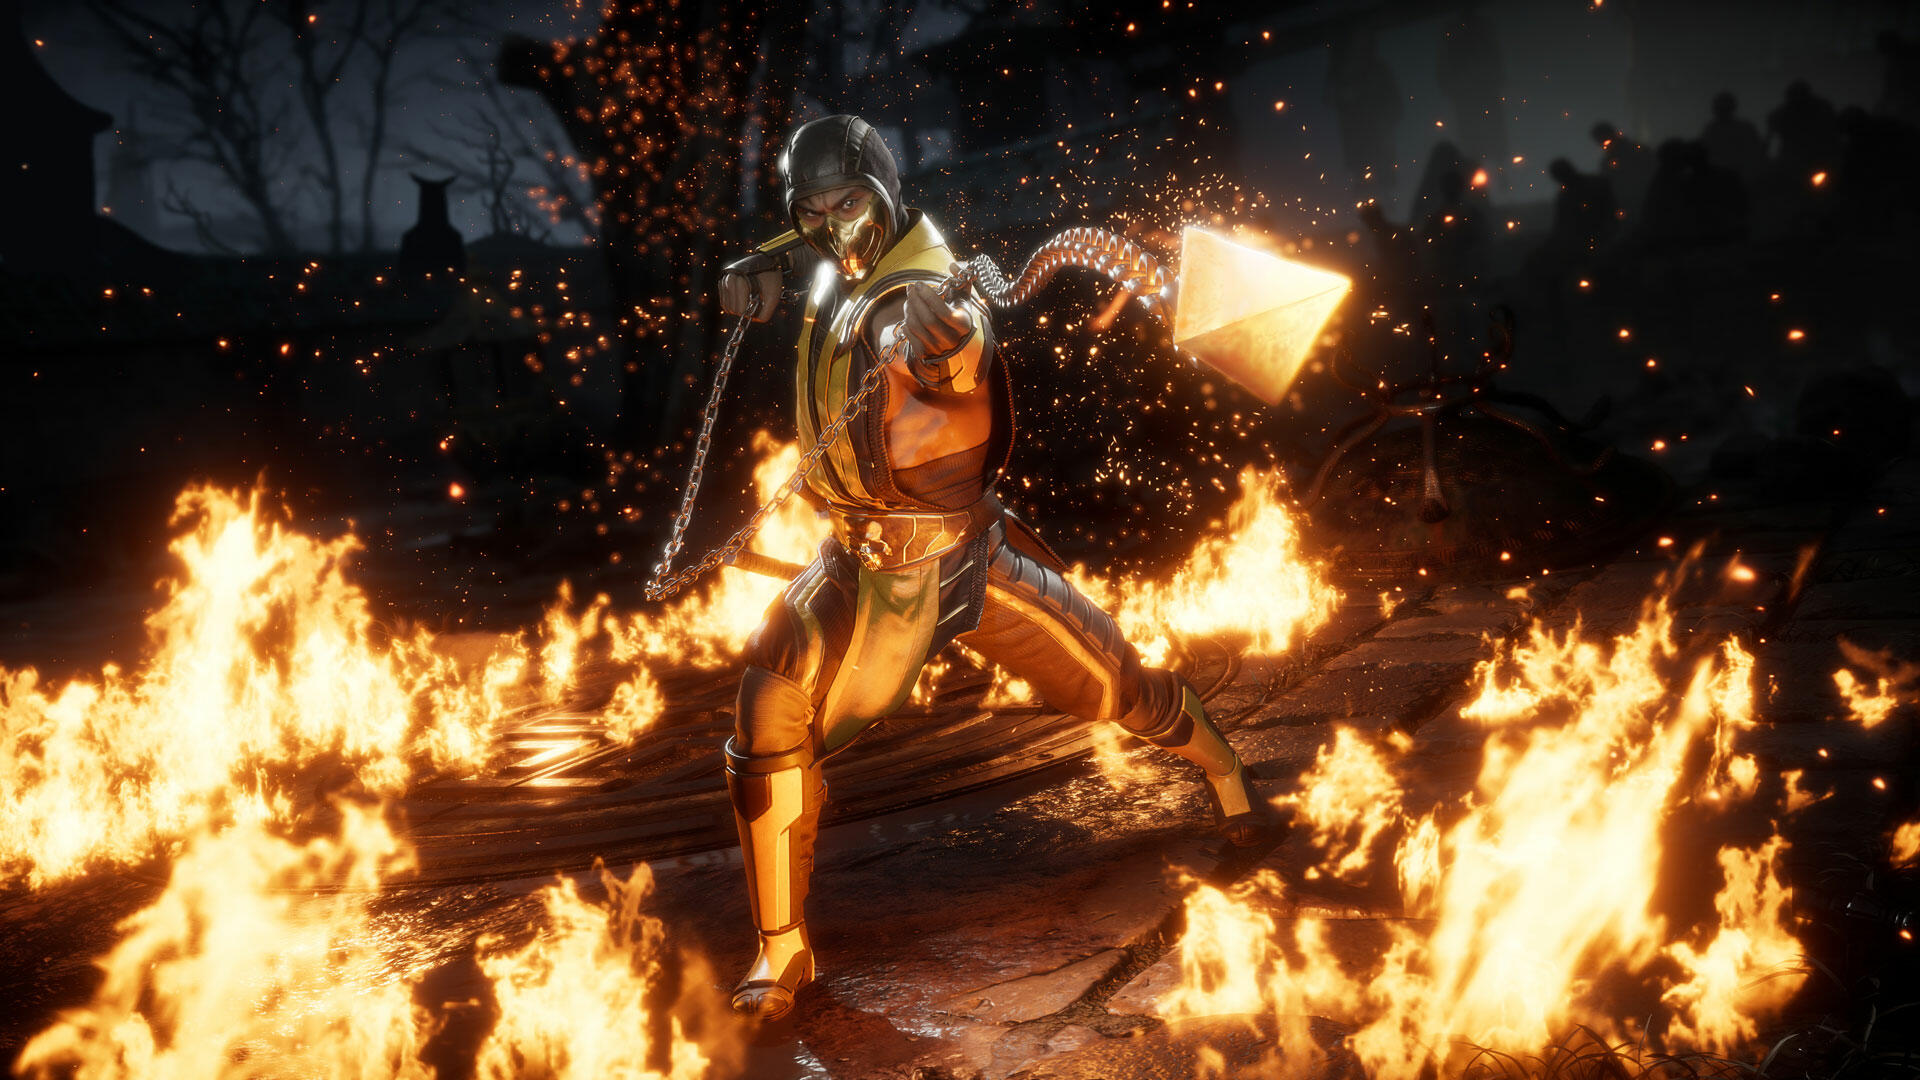 Not a Fatality: Mortal Kombat 11 Runs Shockingly Well on Switch